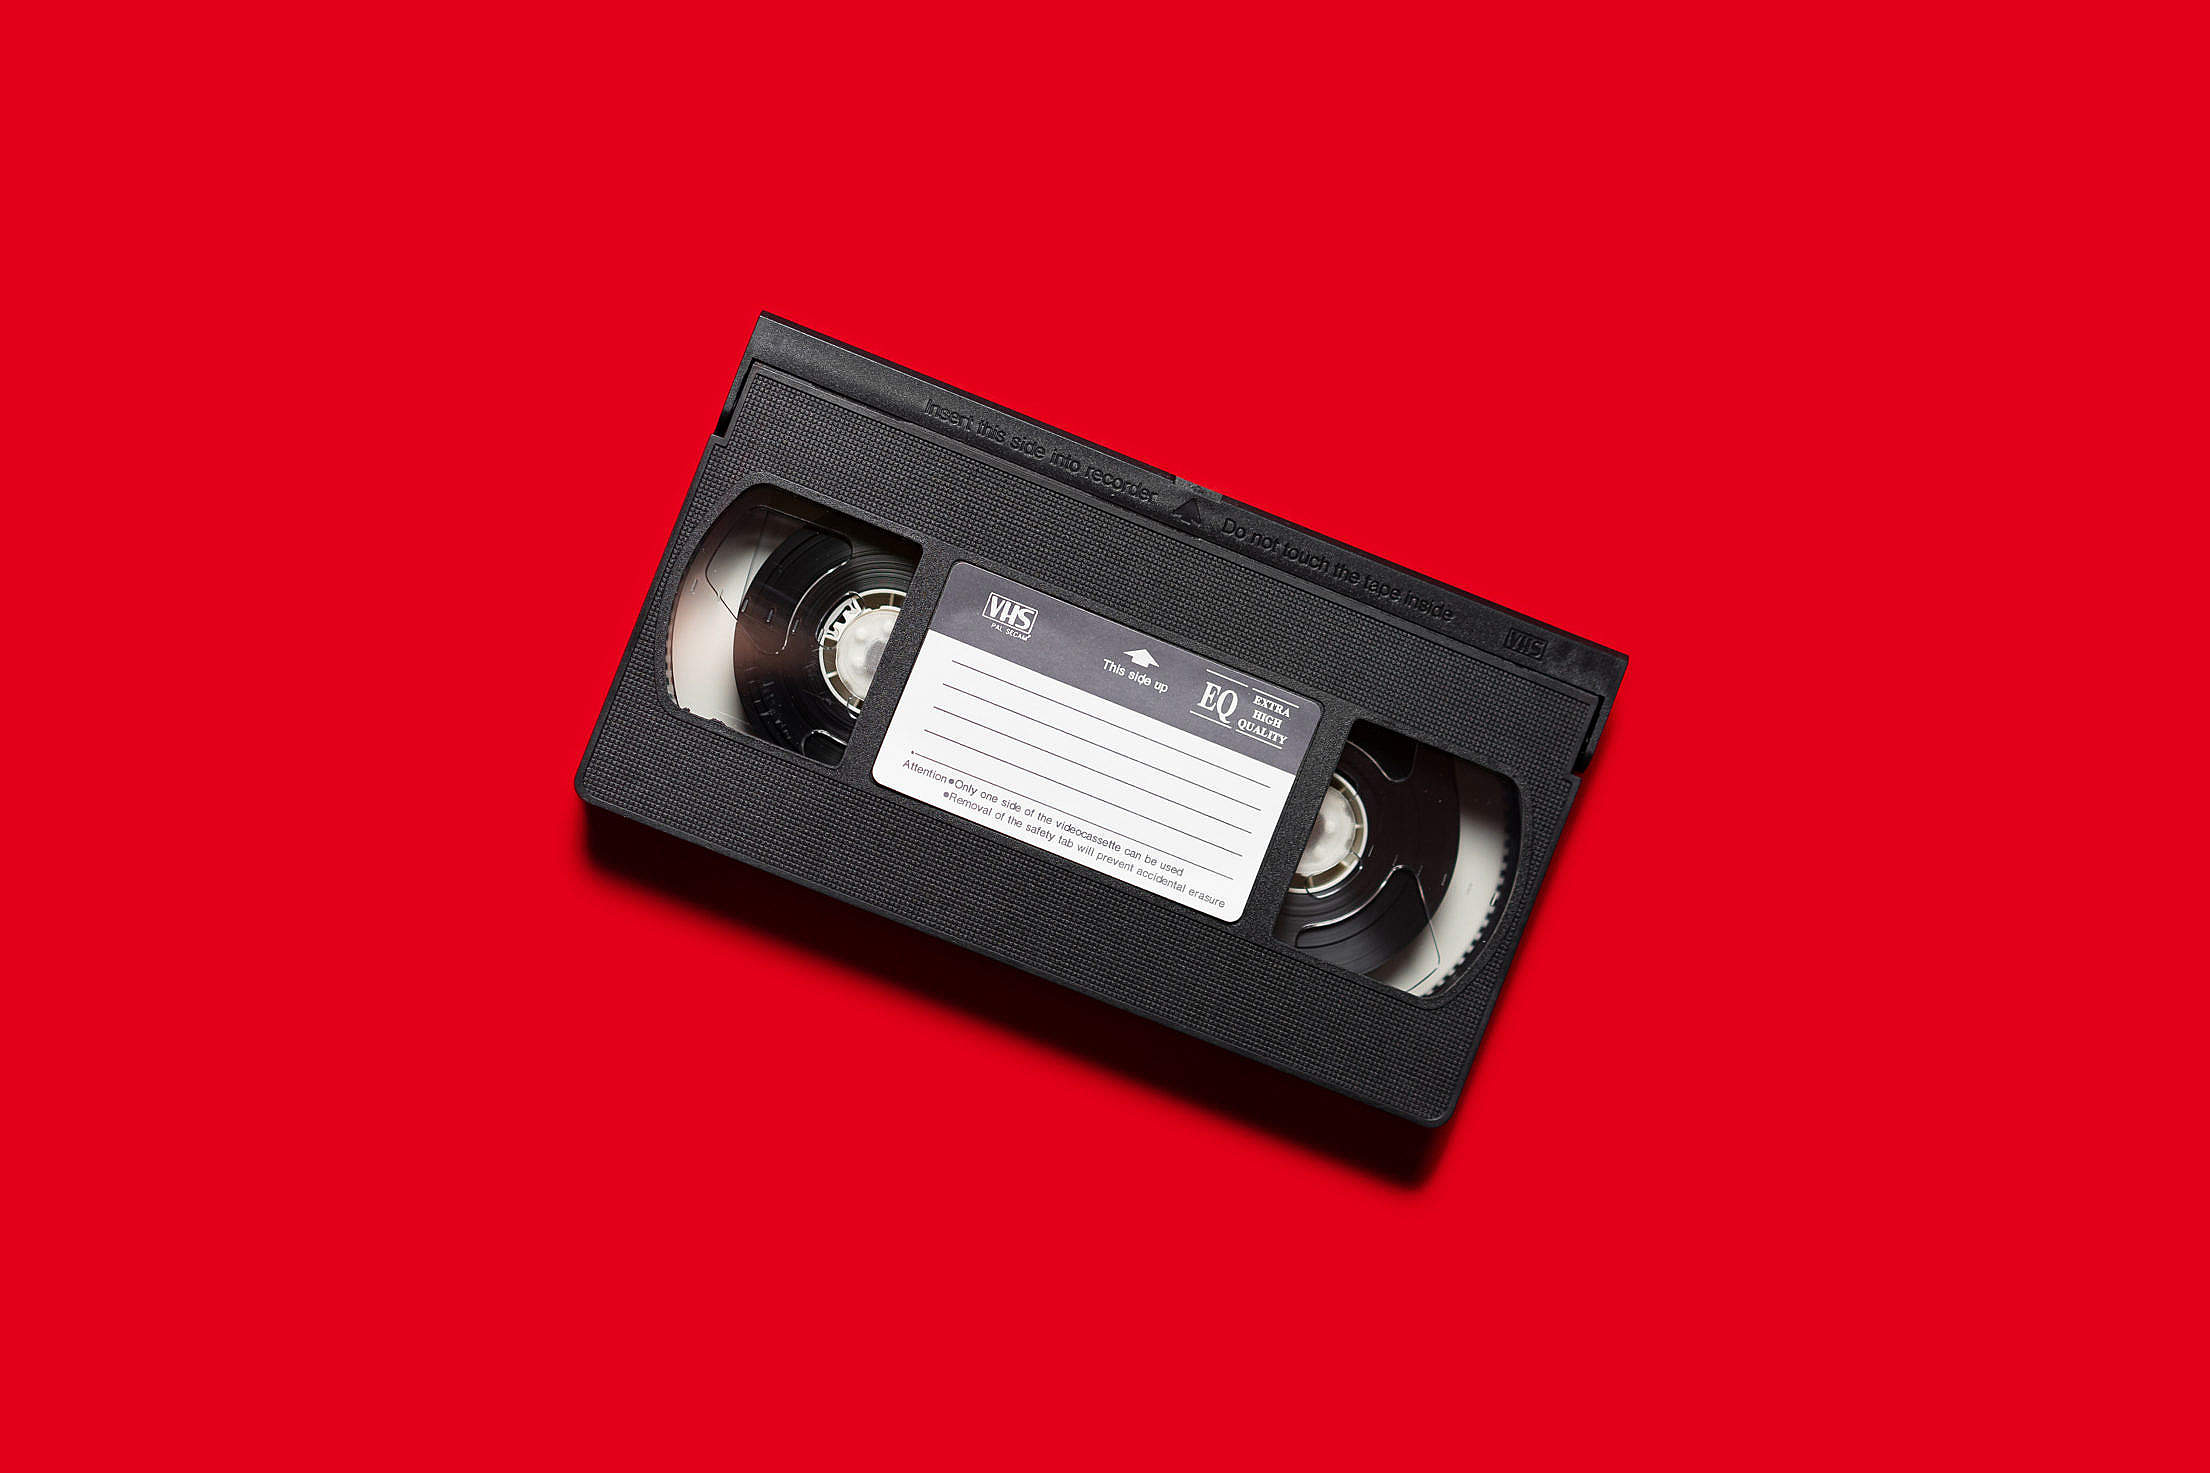 VHS Old Video Cassette Free Stock Photo